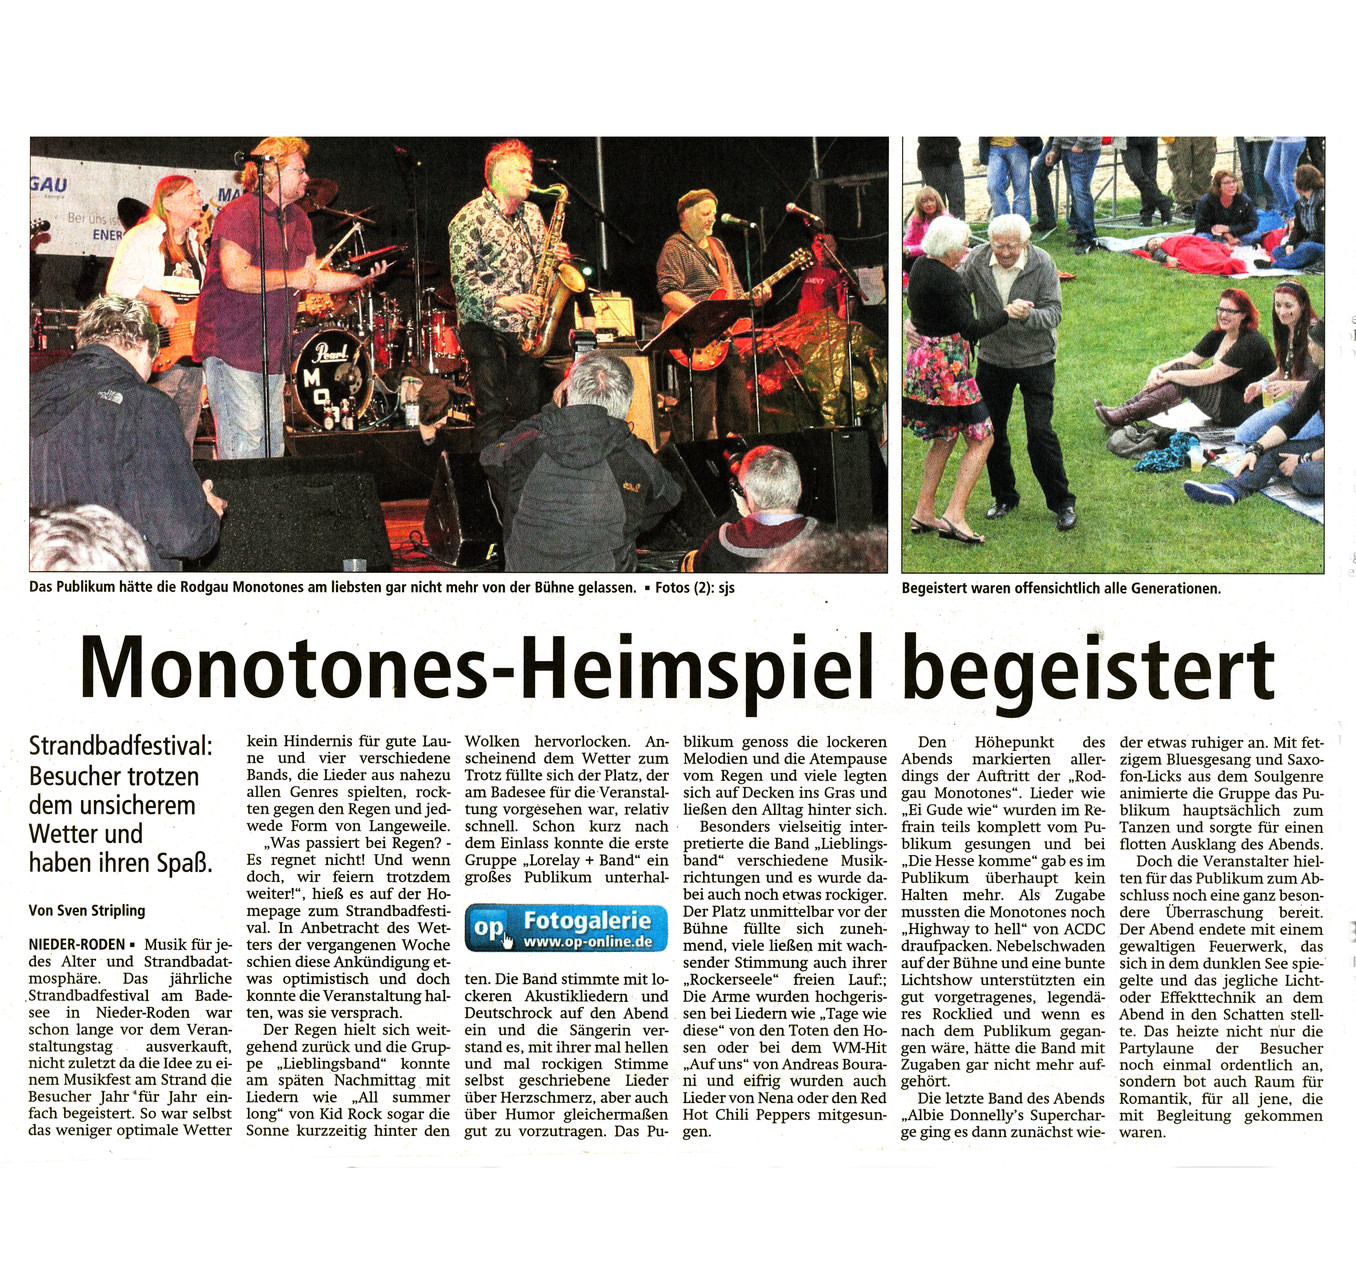 Offenbach Post, 18. August 2014